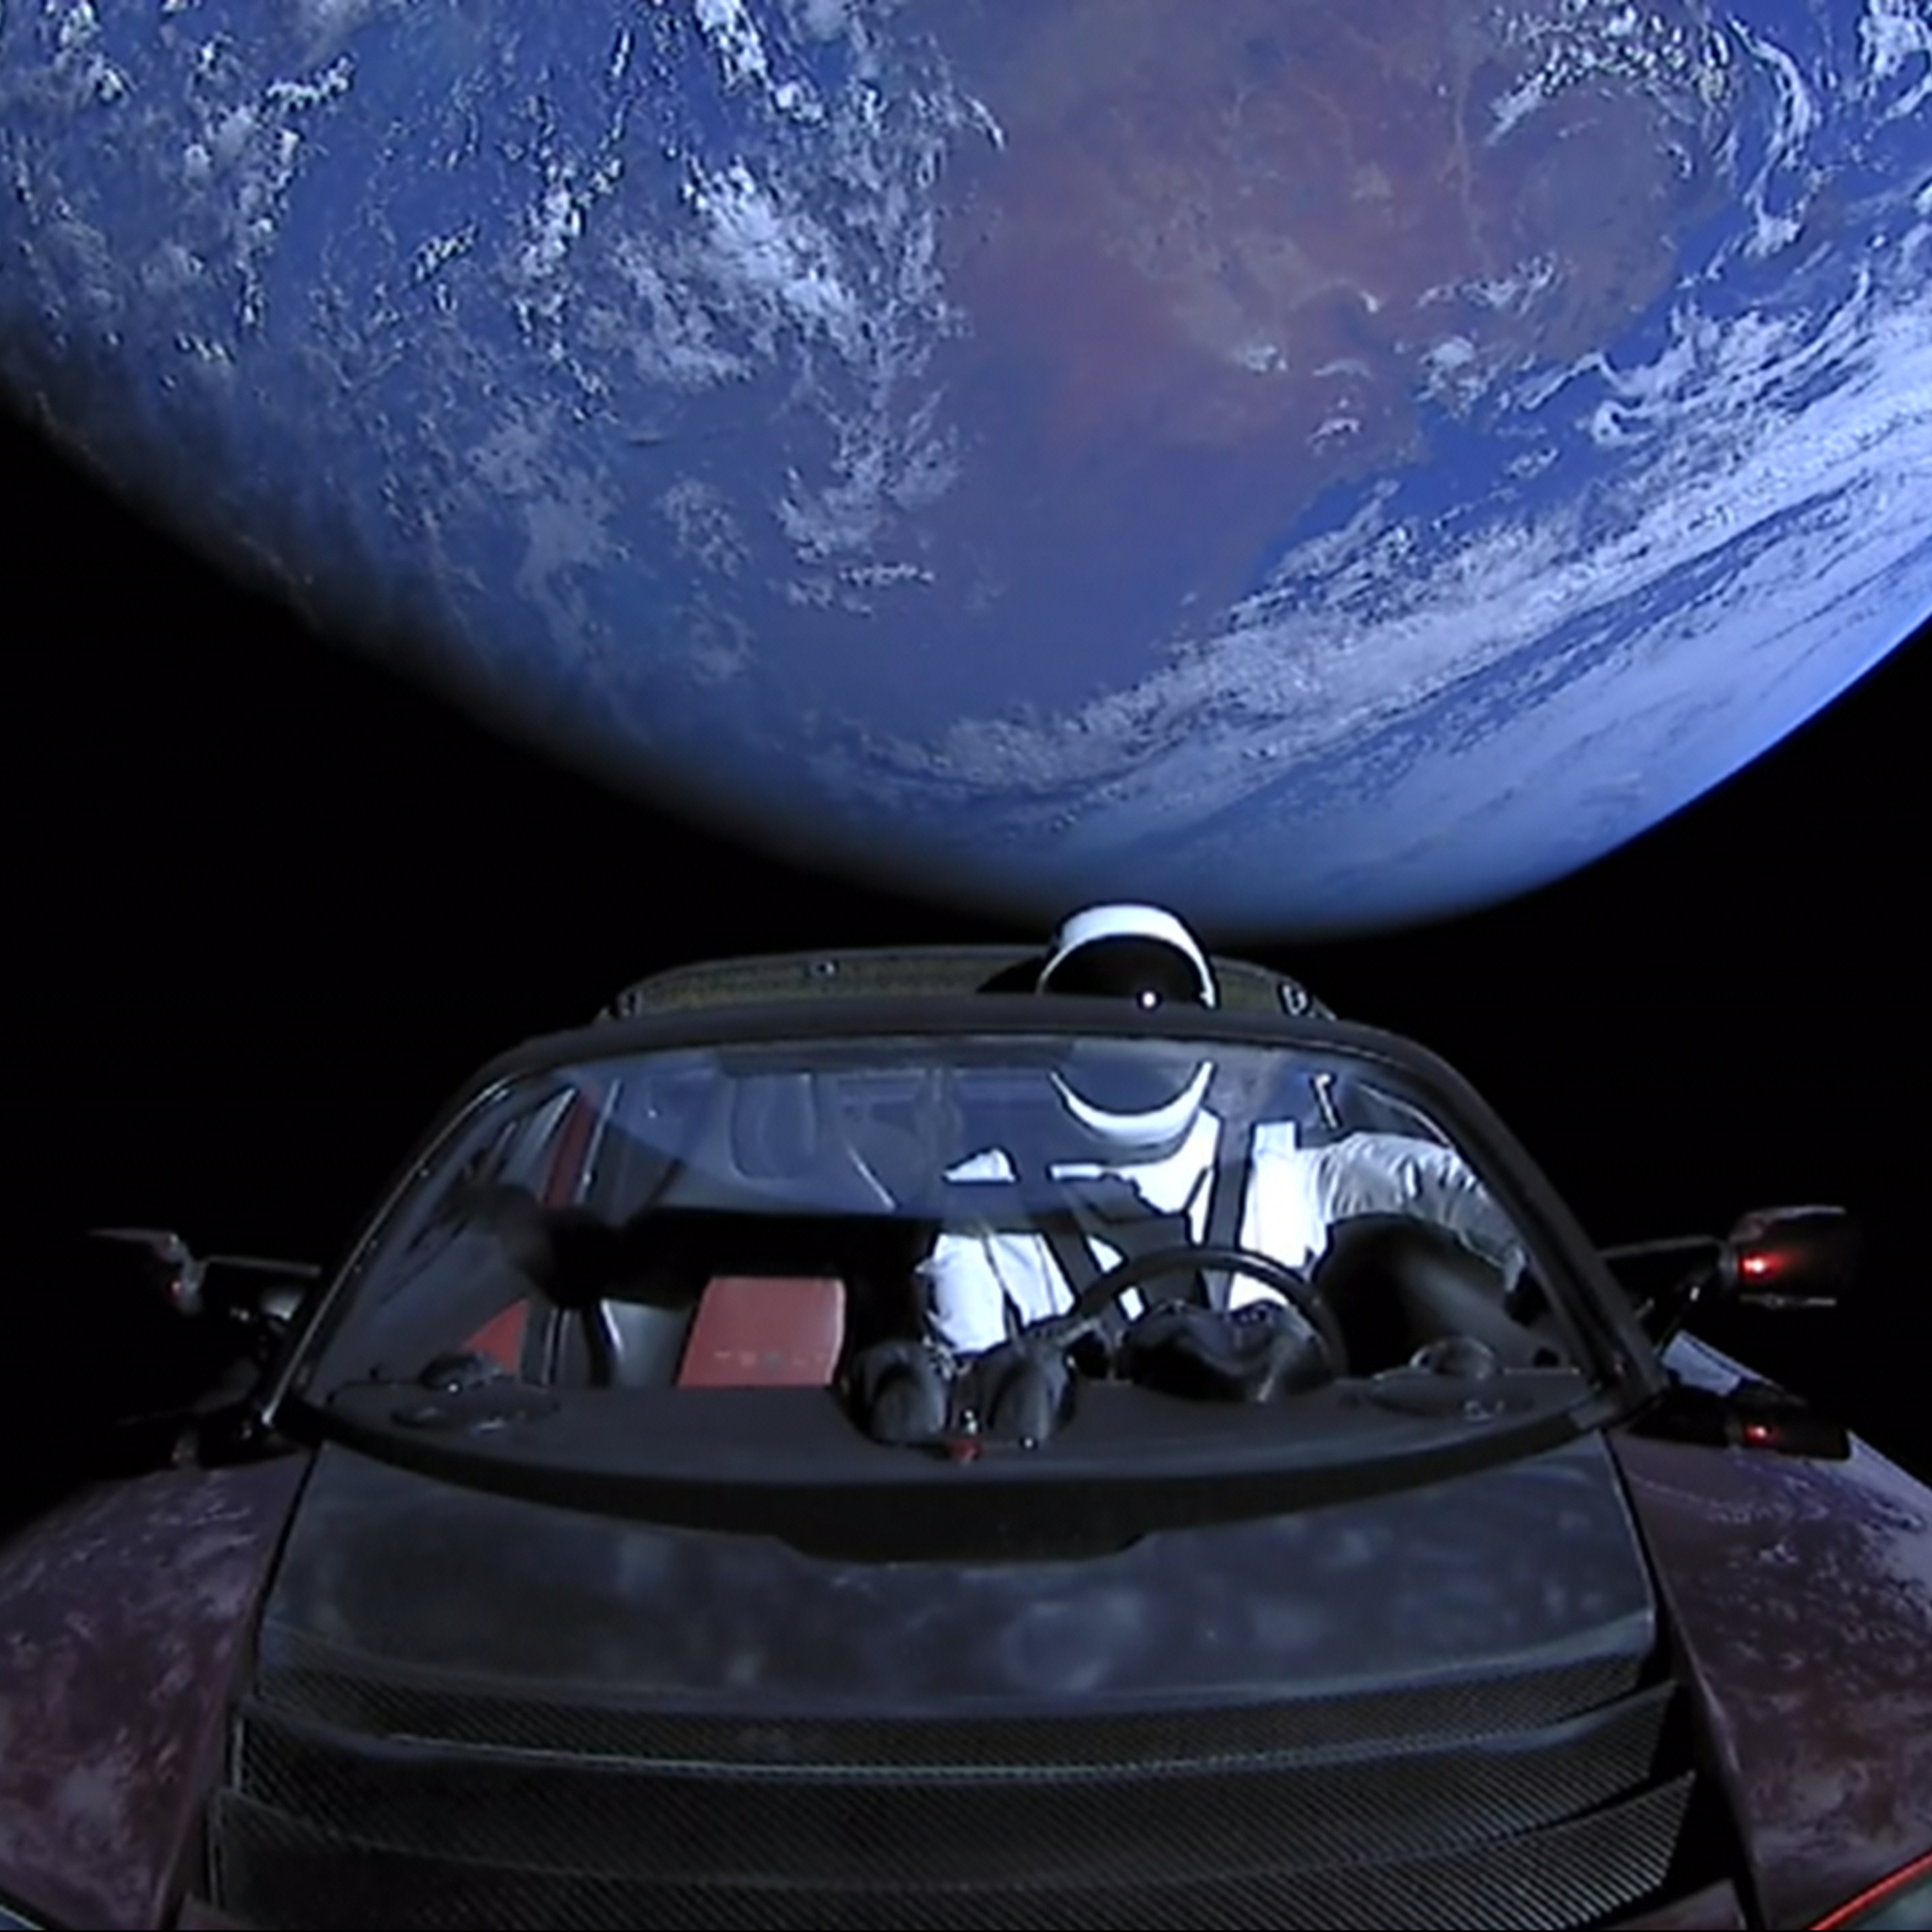 2048x2048 Tesla Roadster Into Space With Space Suit Man